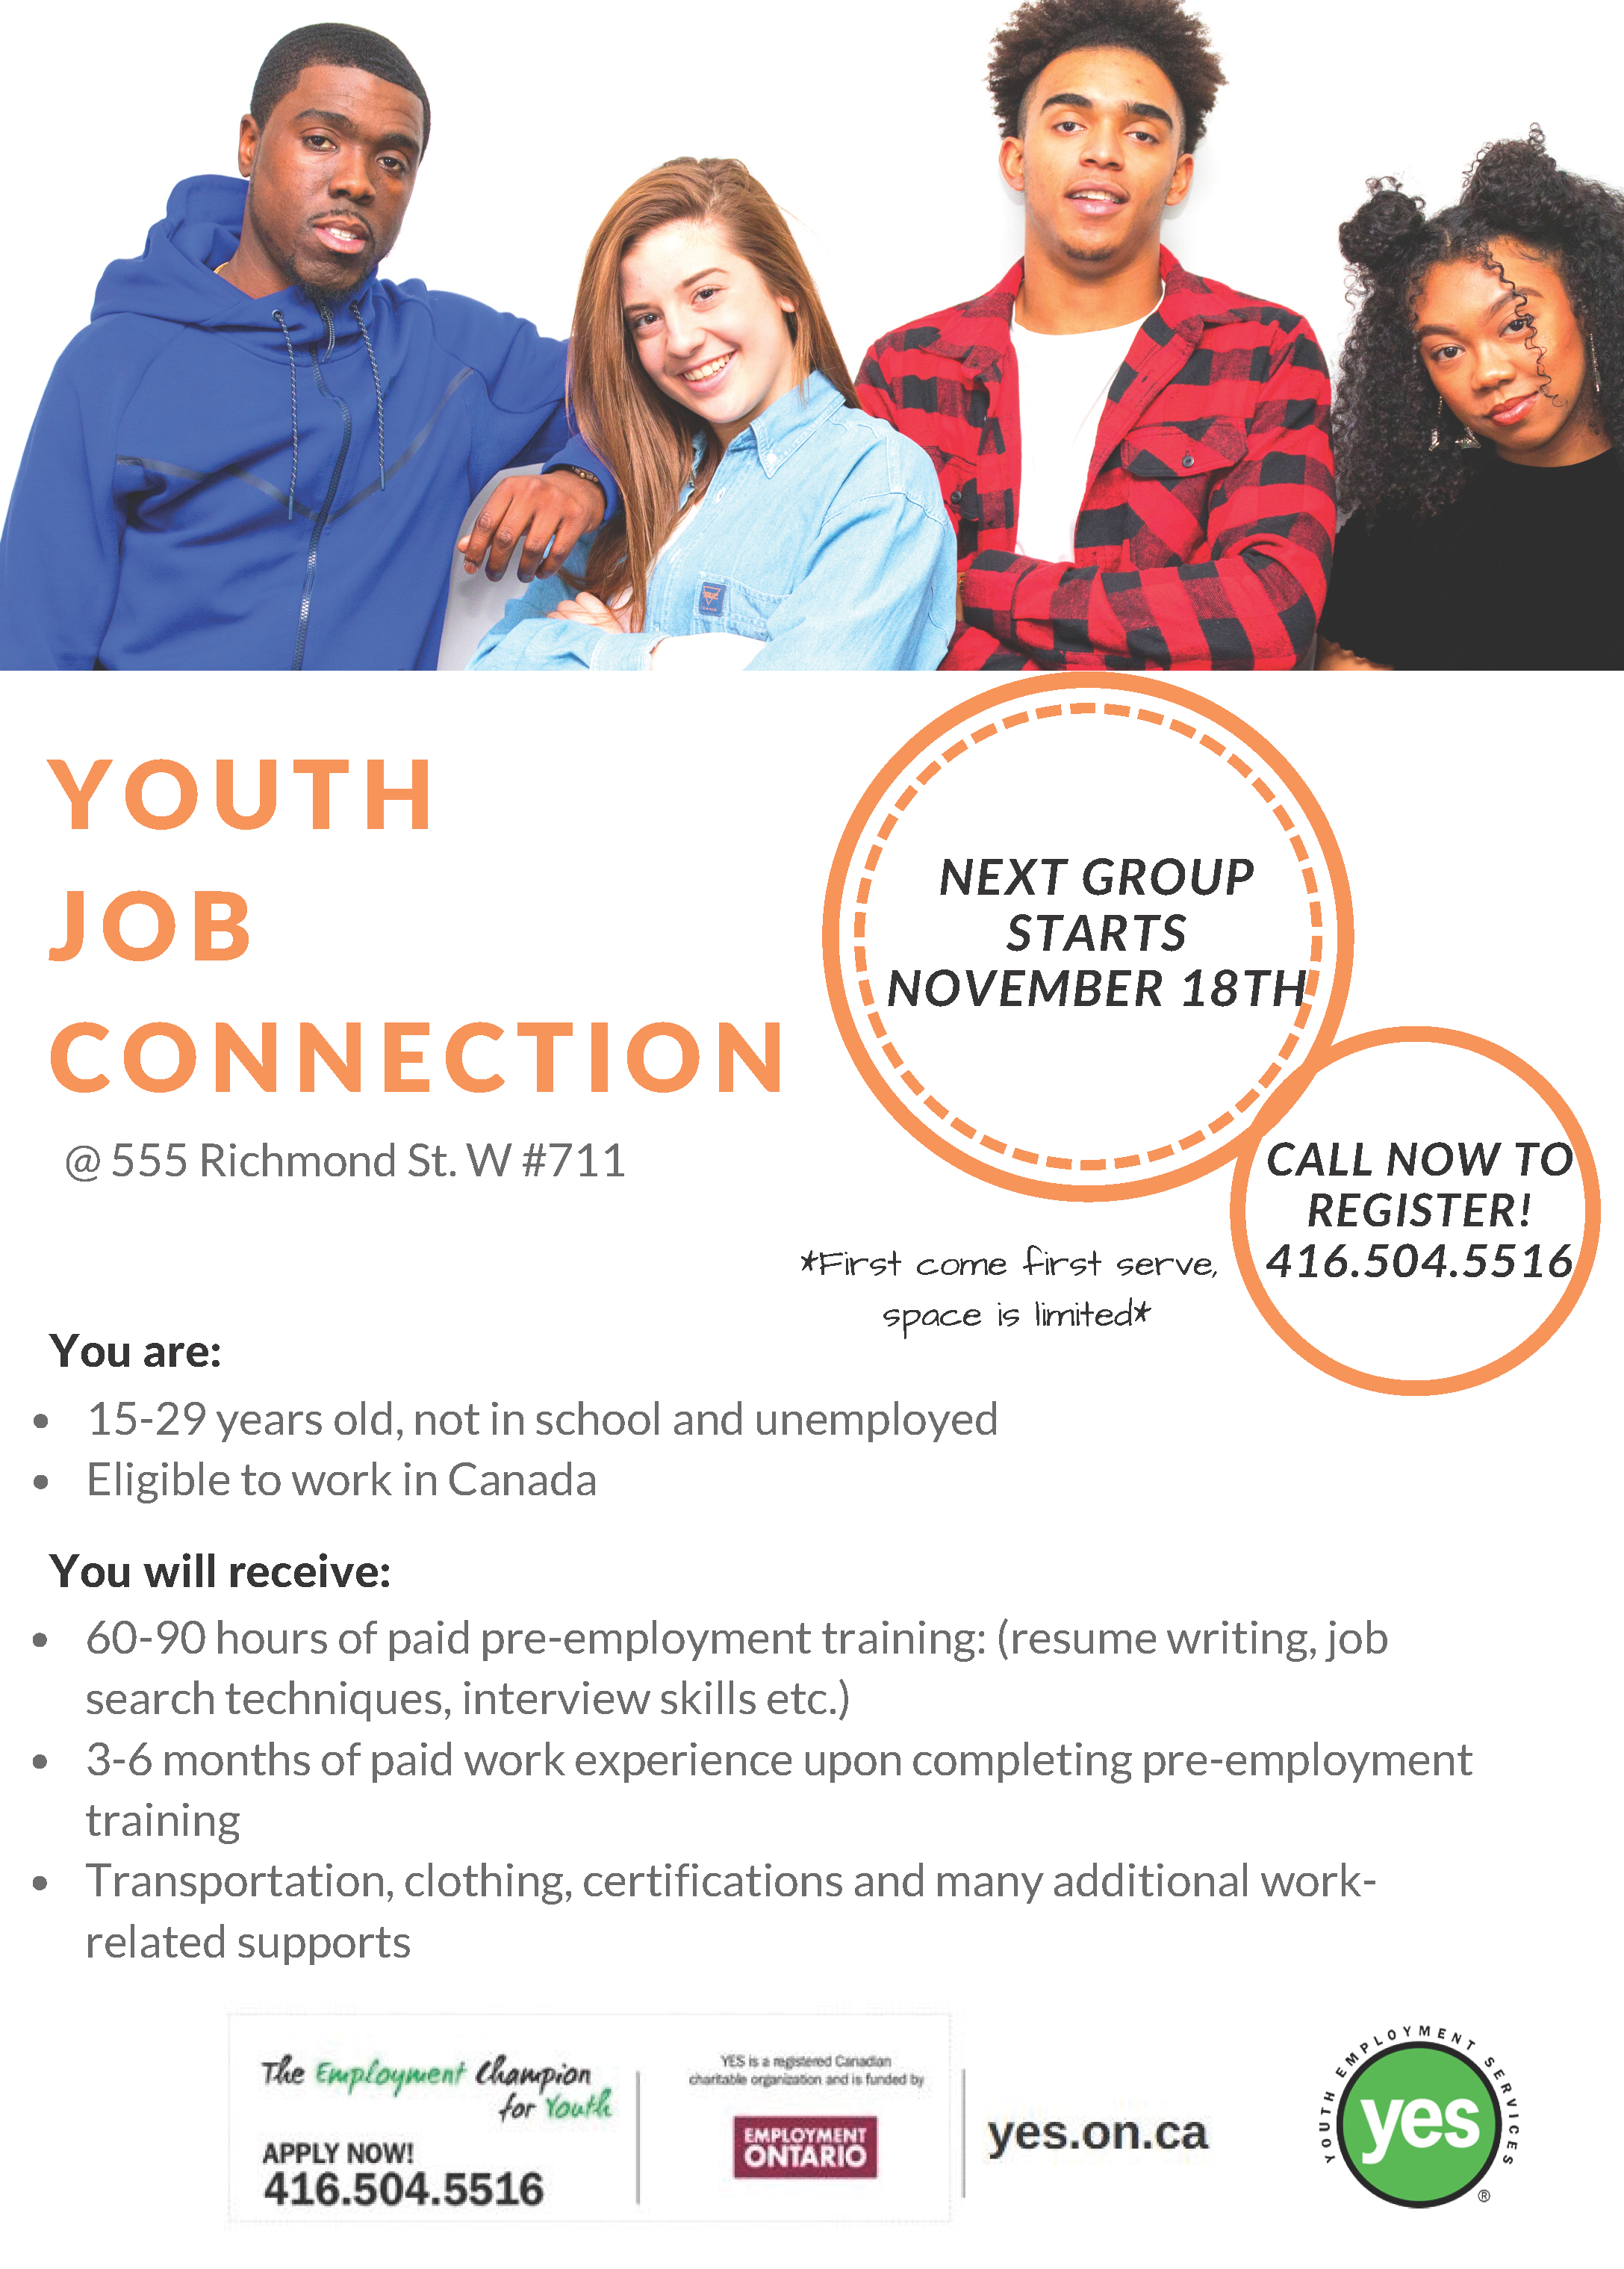 Youth Job Connection @ 555 Richmond St. W #711